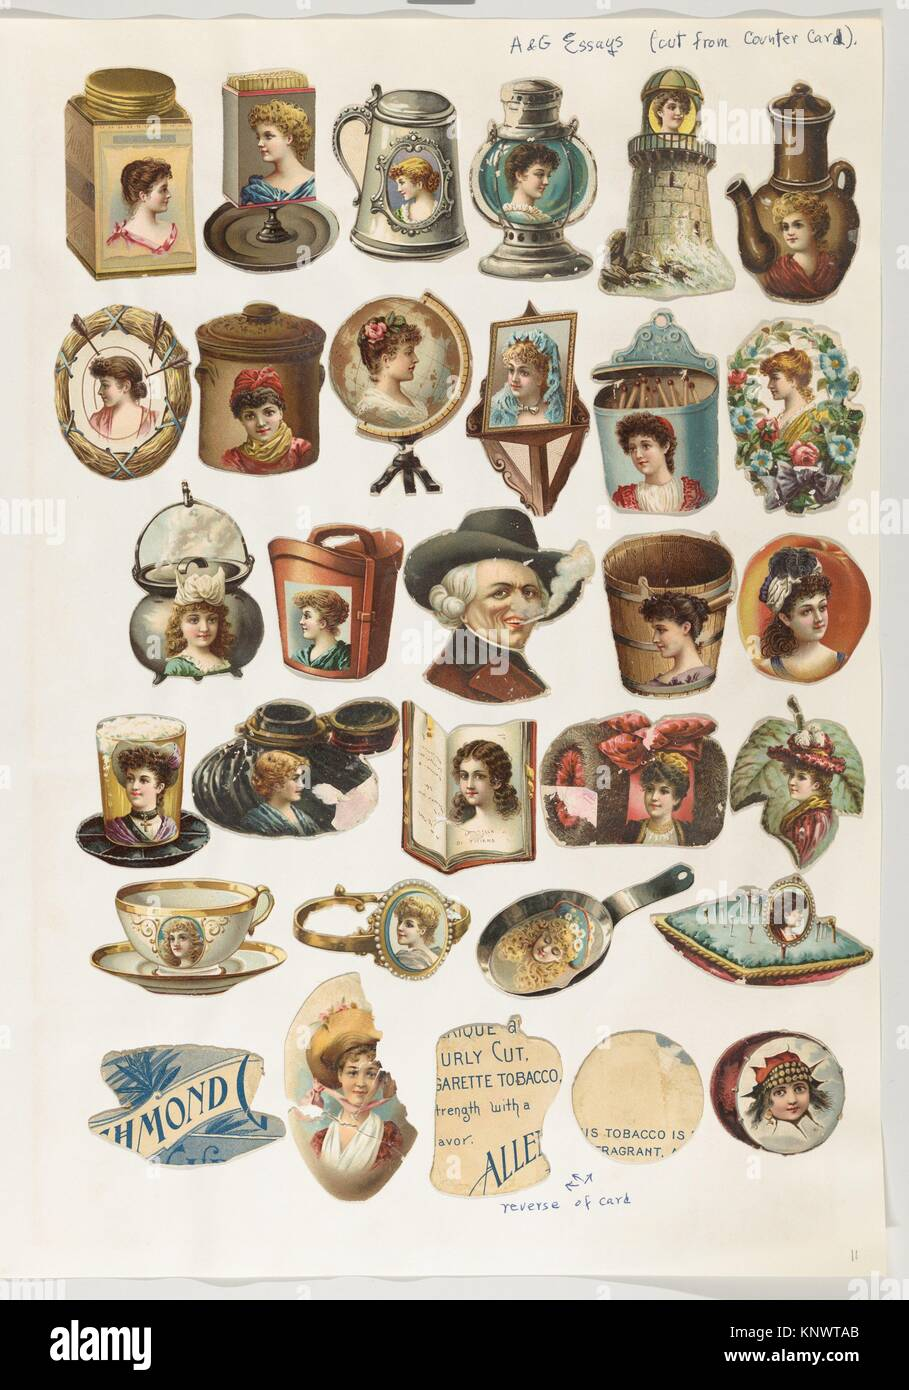 Thirty-one cut-outs from advertising banner for Allen & Ginter Cigarettes. Publisher: Issued by Allen & - Stock Image